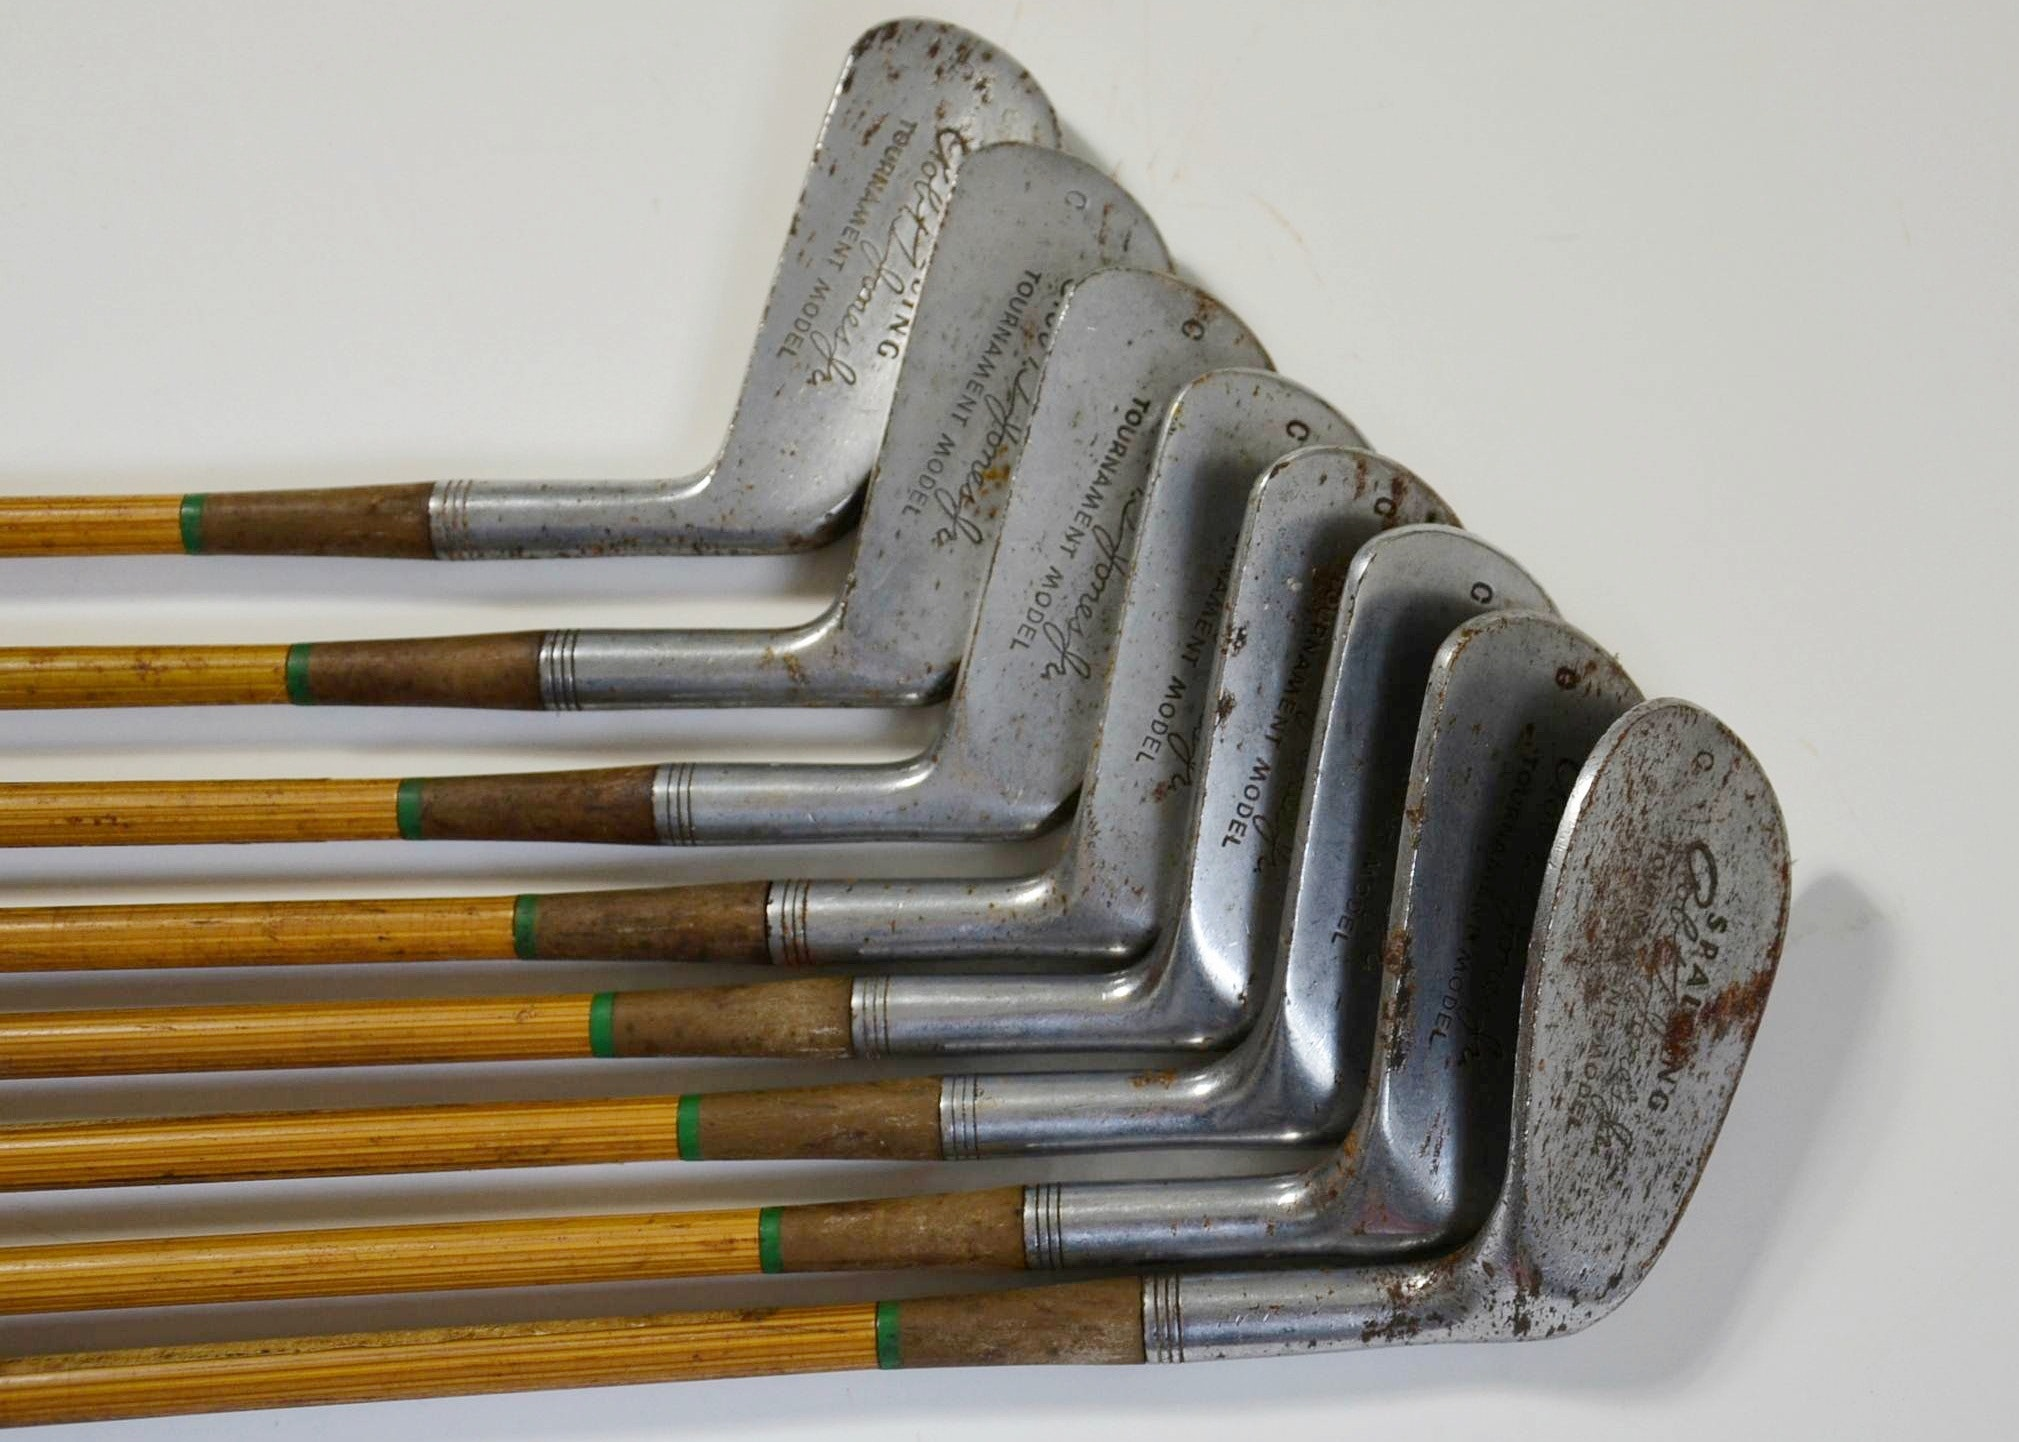 Circa 1950 S Spalding Robert T Jones Jr Golf Club Set